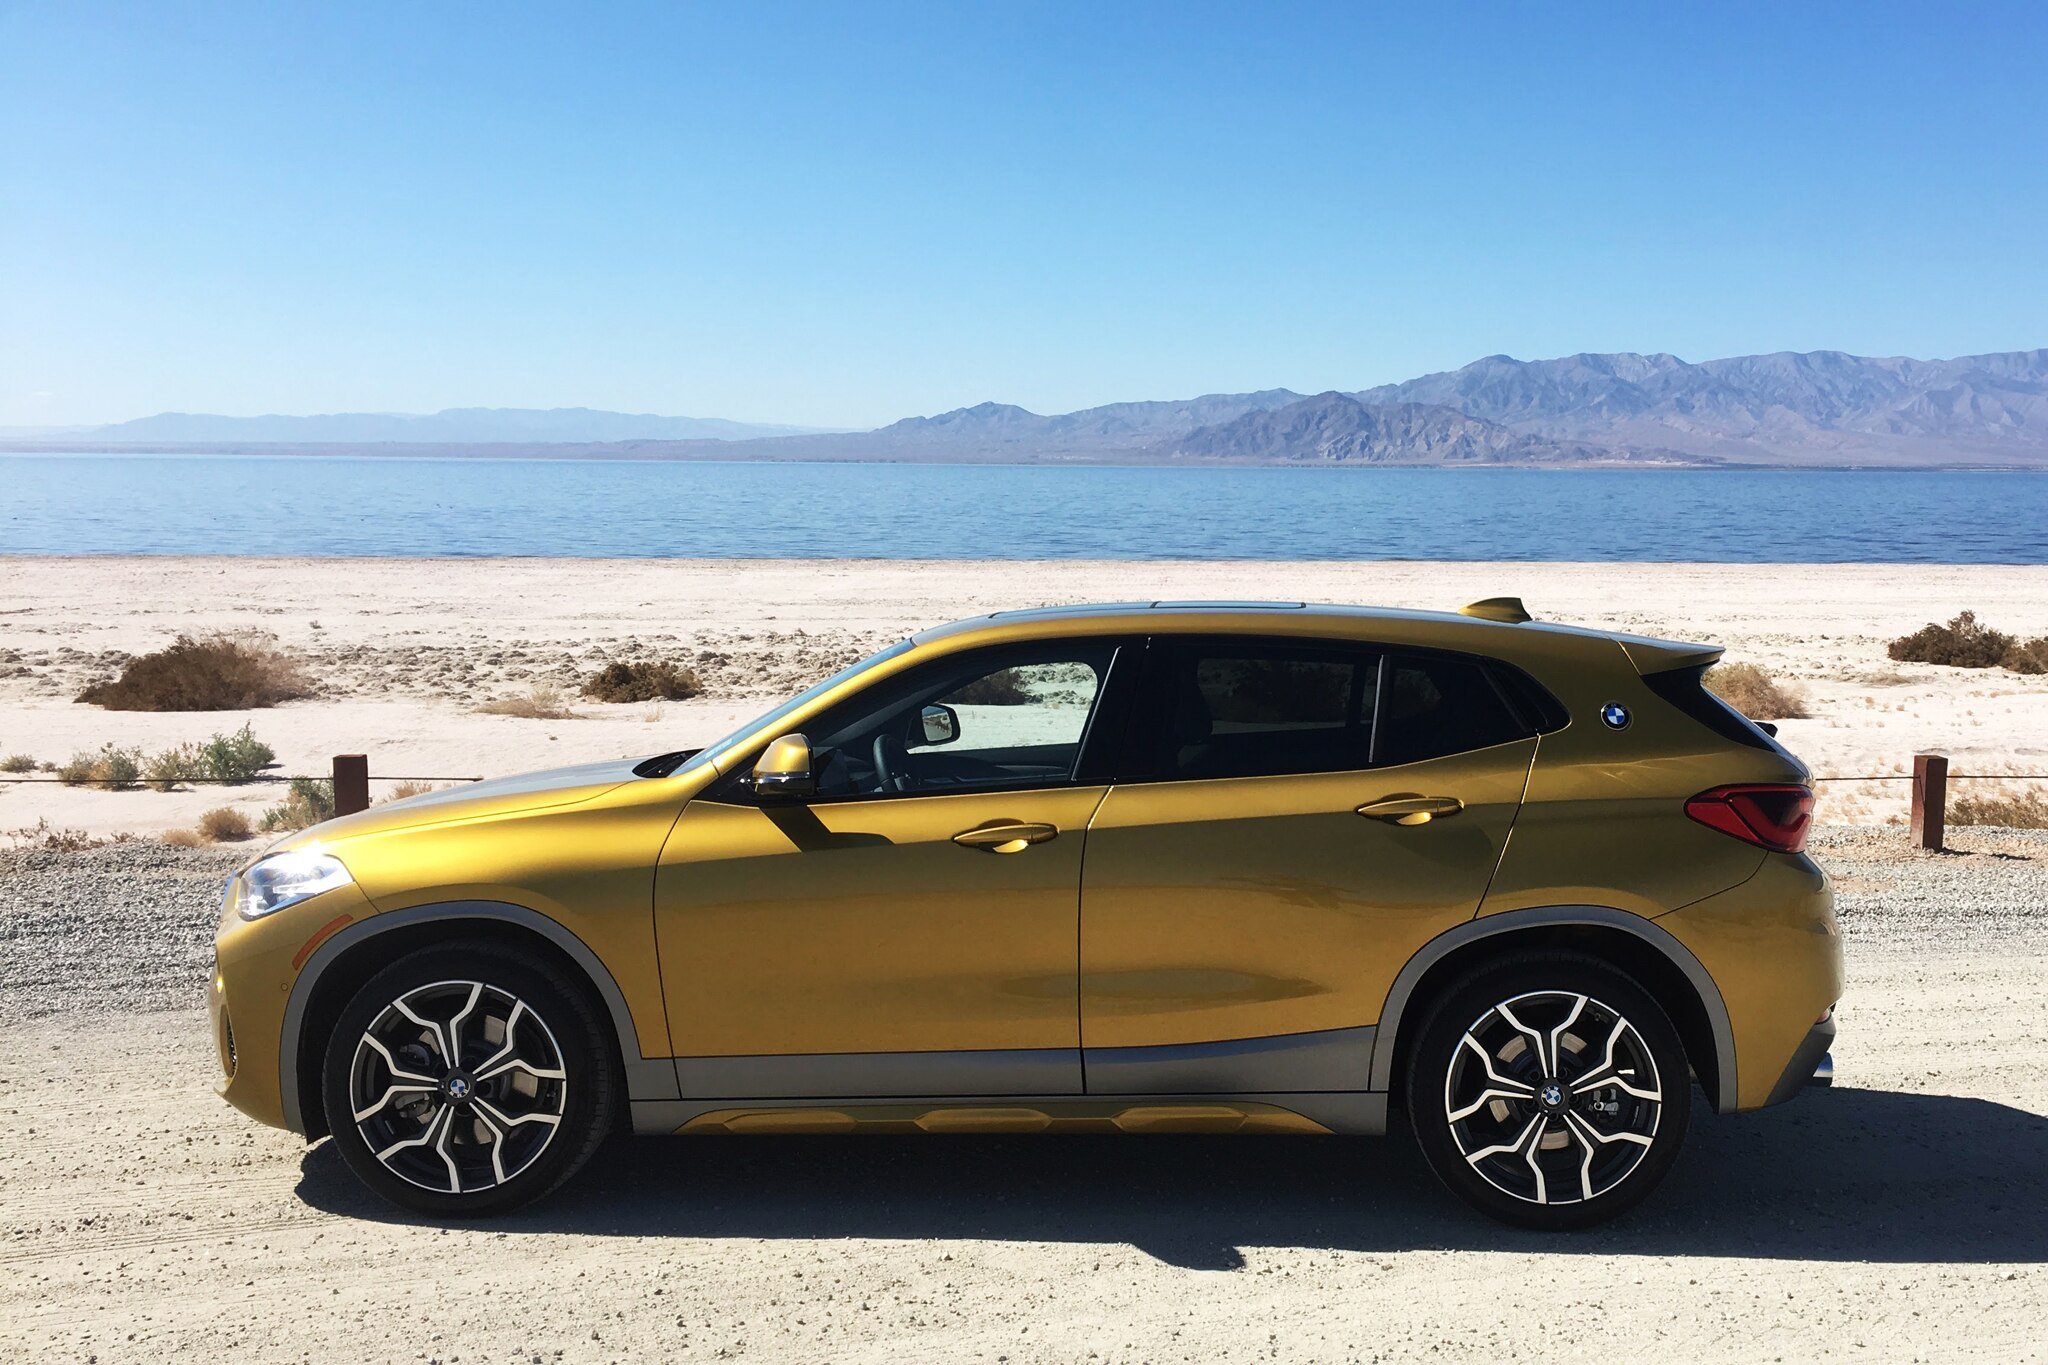 2018 BMW X2 XDrive 28i Left Side Salton Sea